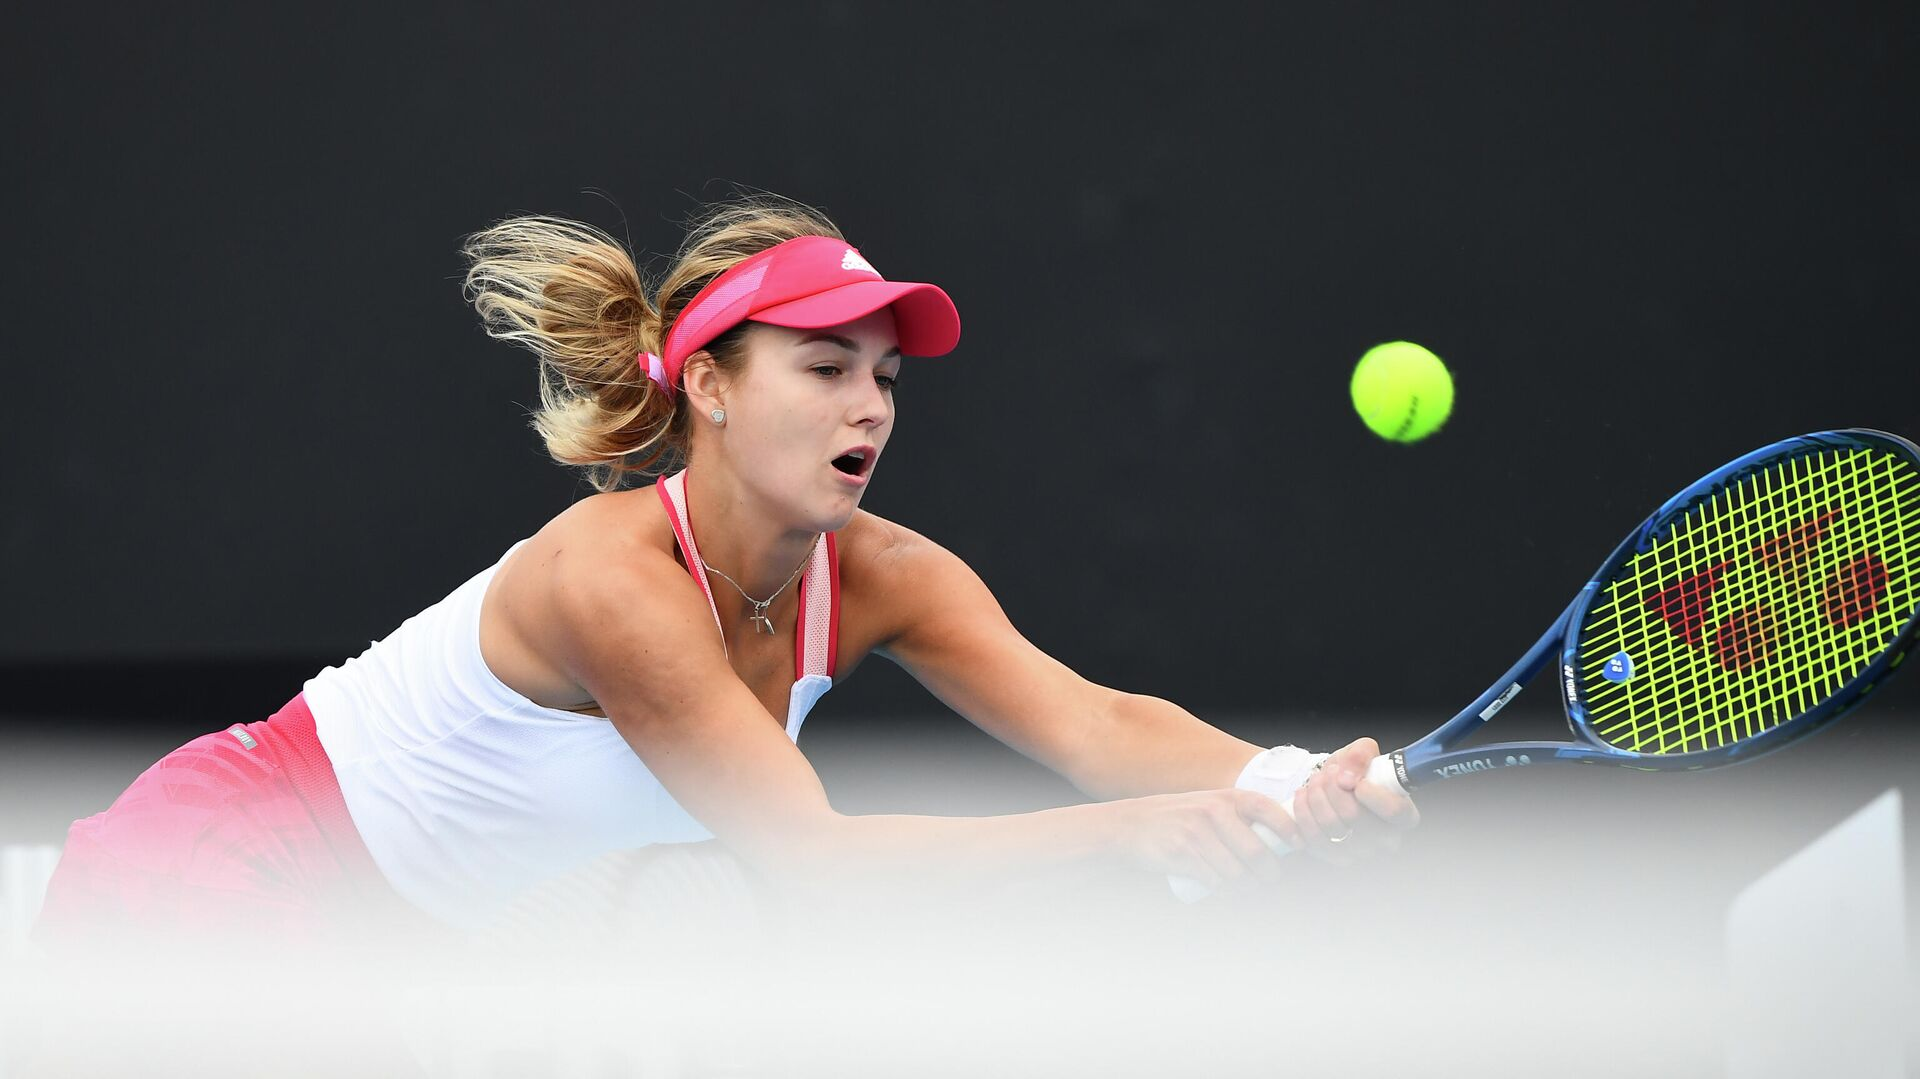 Russia's Anna Kalinskaya hits a return against Britain's Katie Boulter during their Gippsland Trophy women's singles tennis match in Melbourne on February 1, 2021. (Photo by William WEST / AFP) - РИА Новости, 1920, 05.02.2021